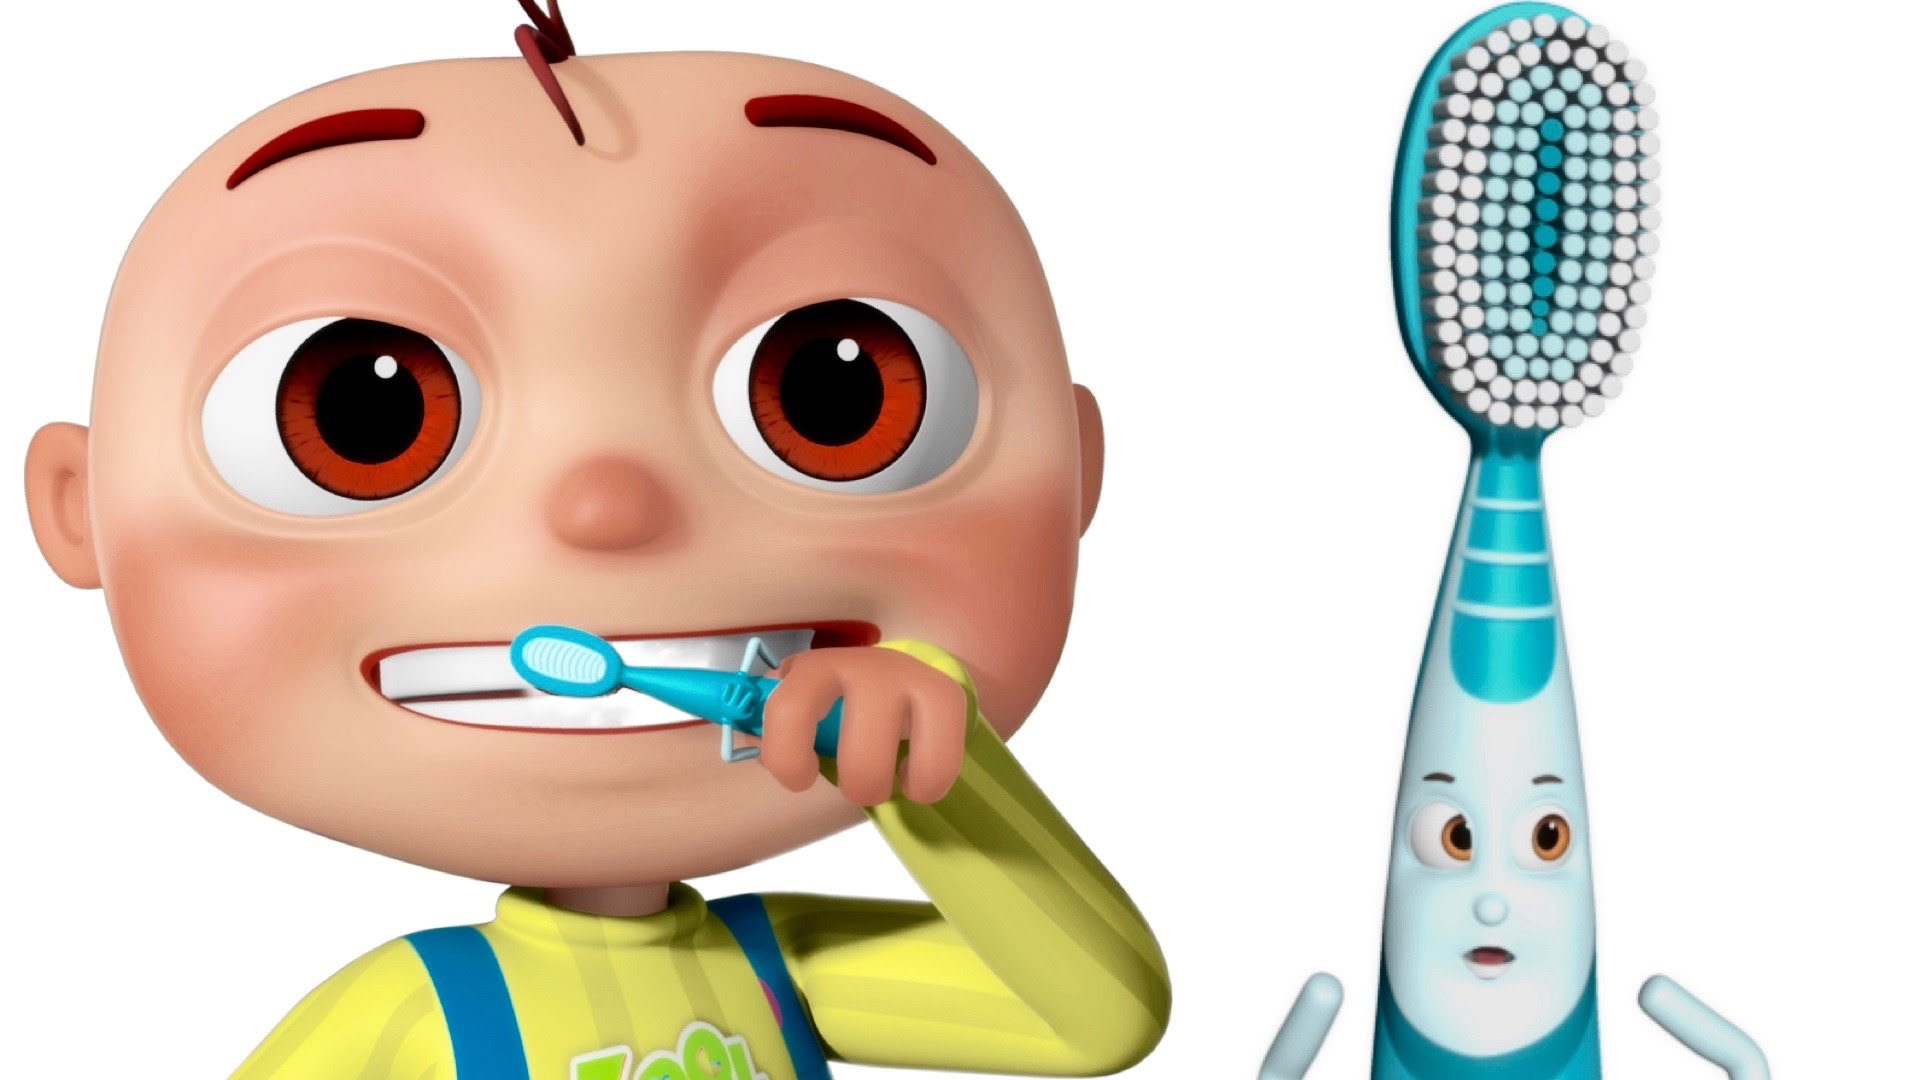 Brushing Teeth Habits in Children